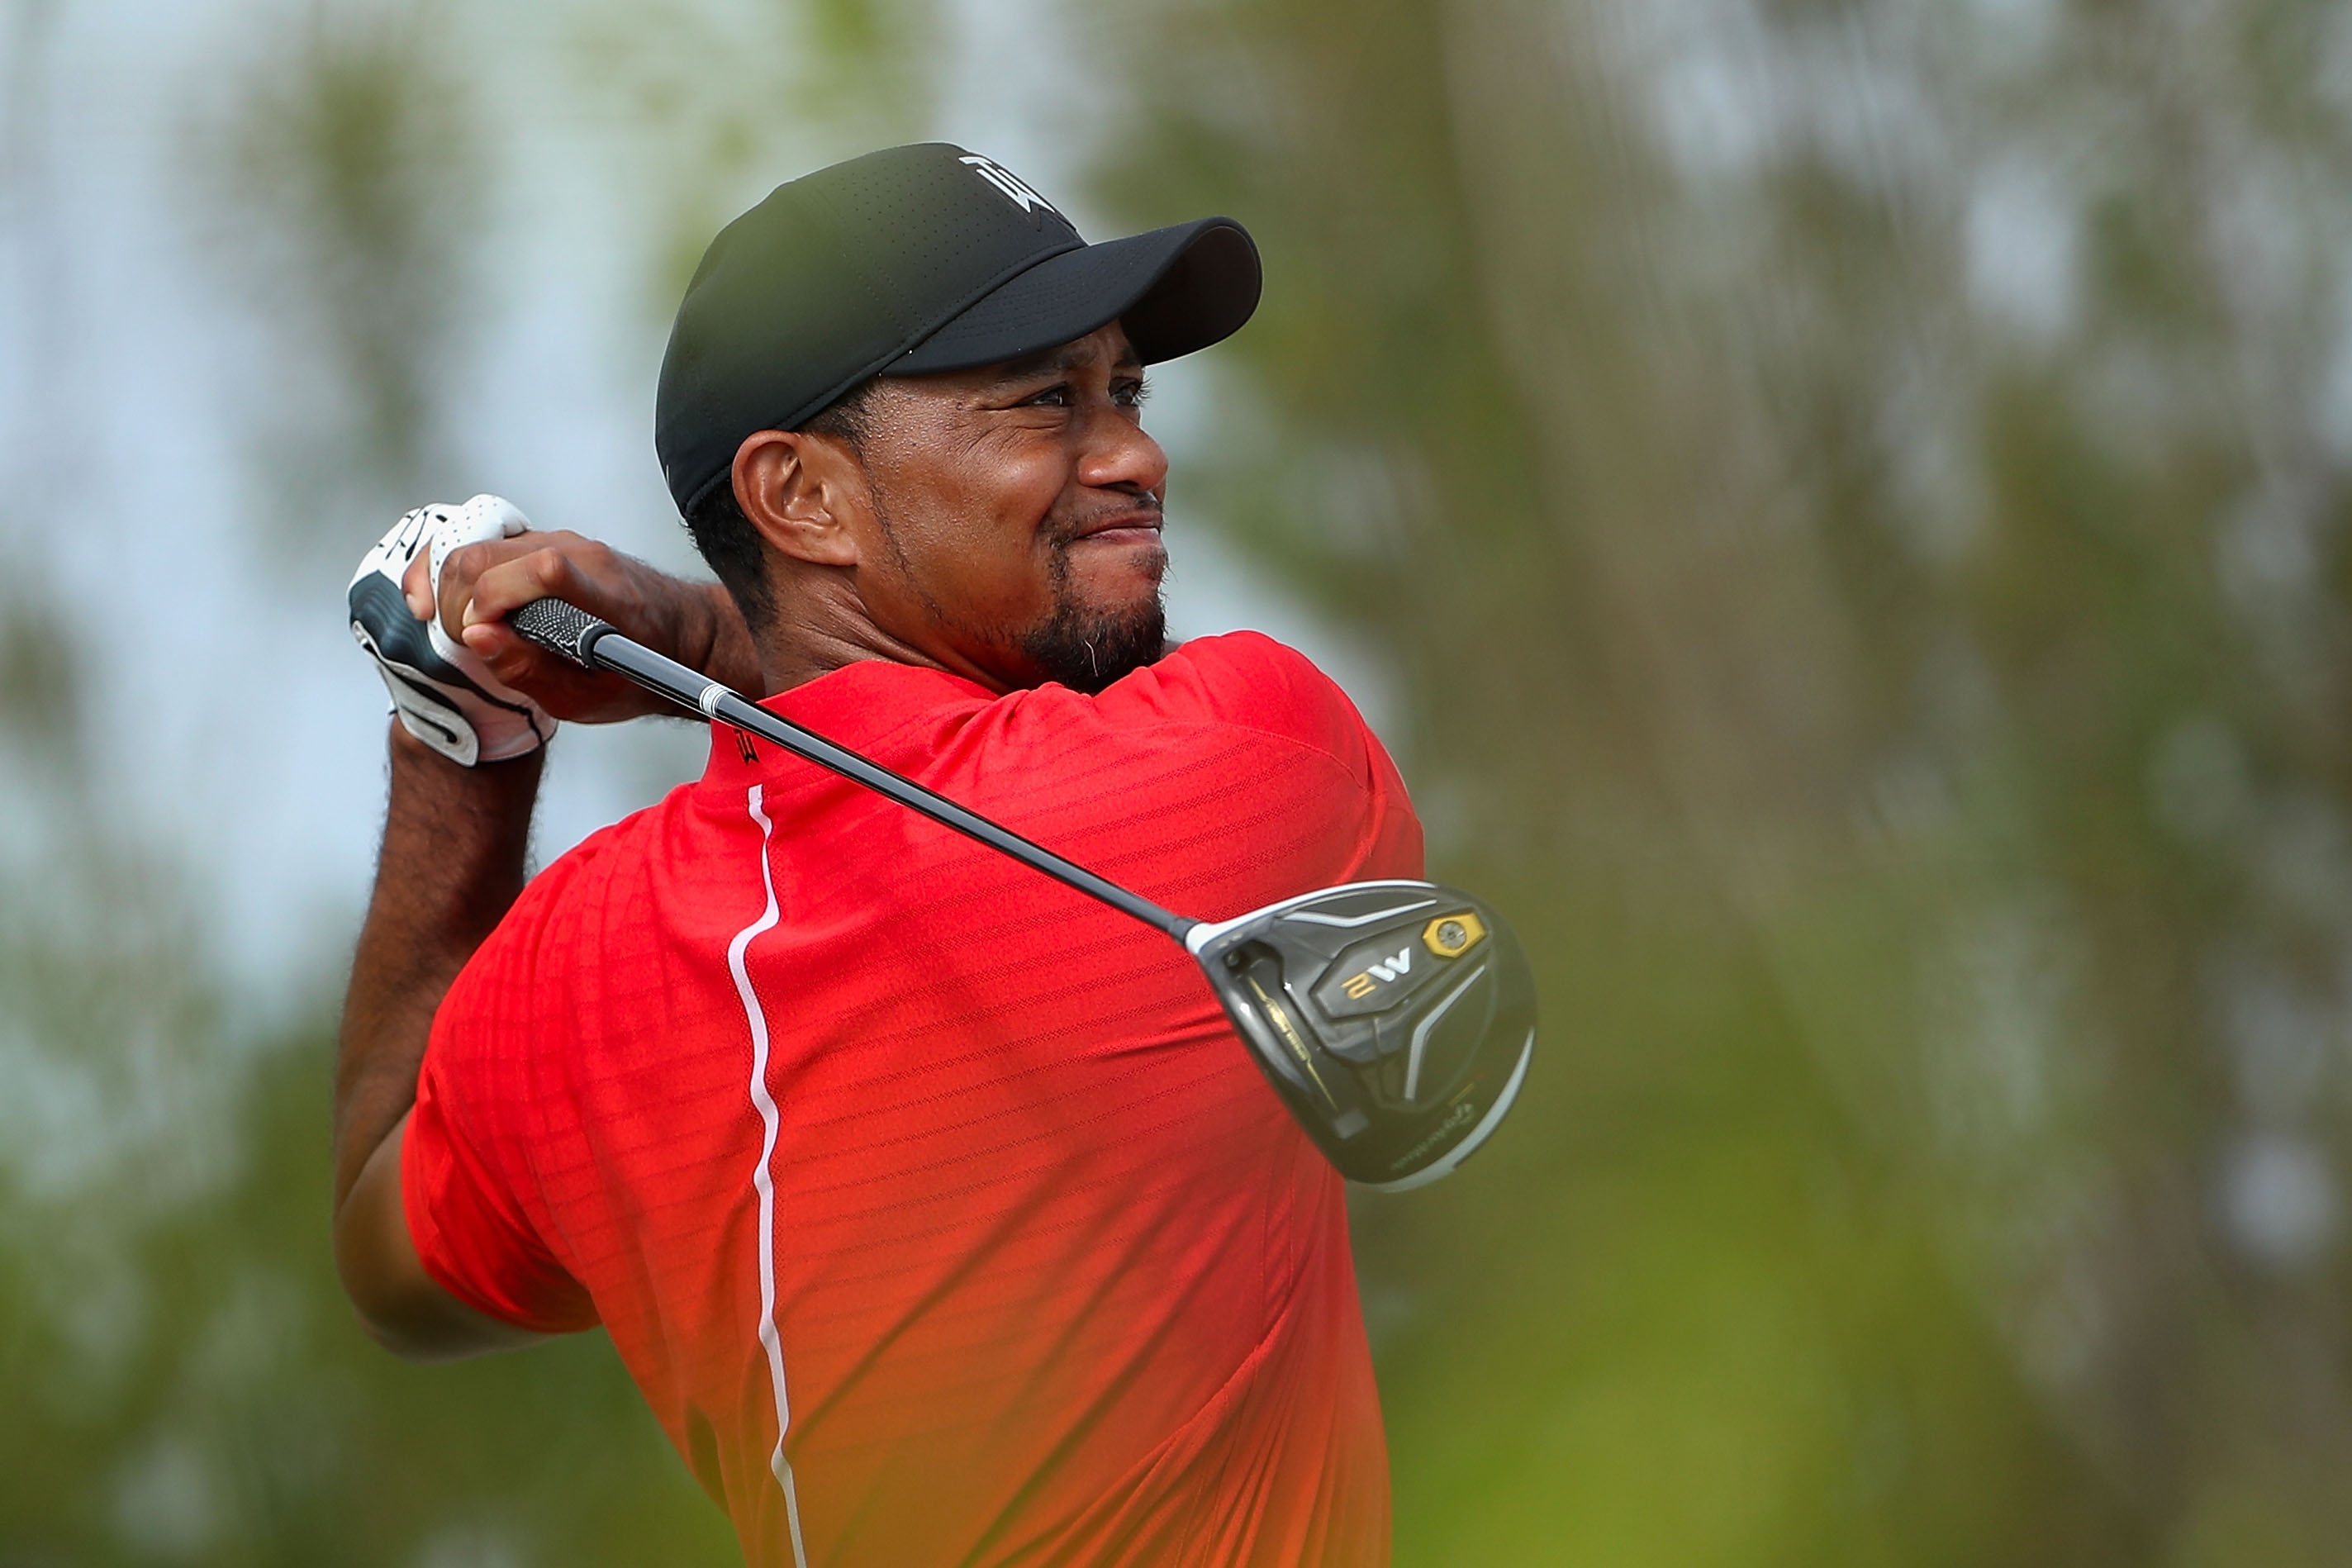 Tiger Woods reveals he's ready for Challenge